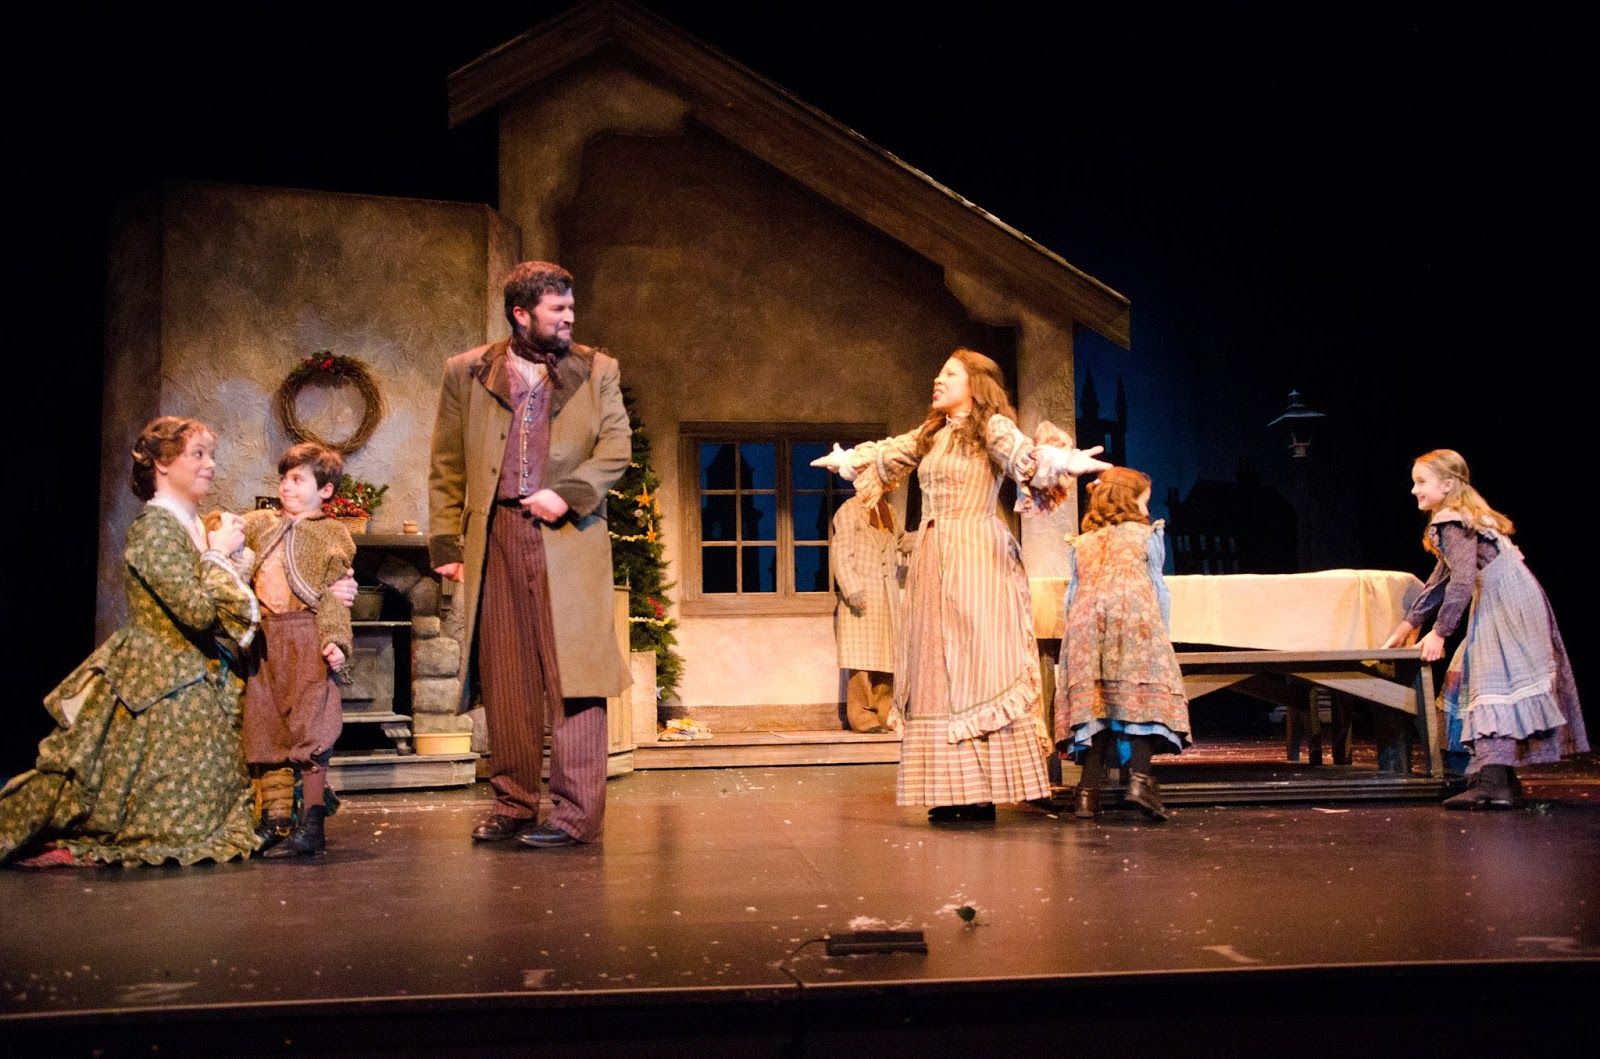 This season, in addition to A Christmas Carol he will also direct The Humans and the revival of Erma Bombeck: At Wit's End. Last season, he directed A Christmas Carol and Erma Bombeck at Wit's End and appeared in the world premiere of Heartland. Mr. Cuddy is well known for his staging of premieres, contemporary comedies and musical theatre.